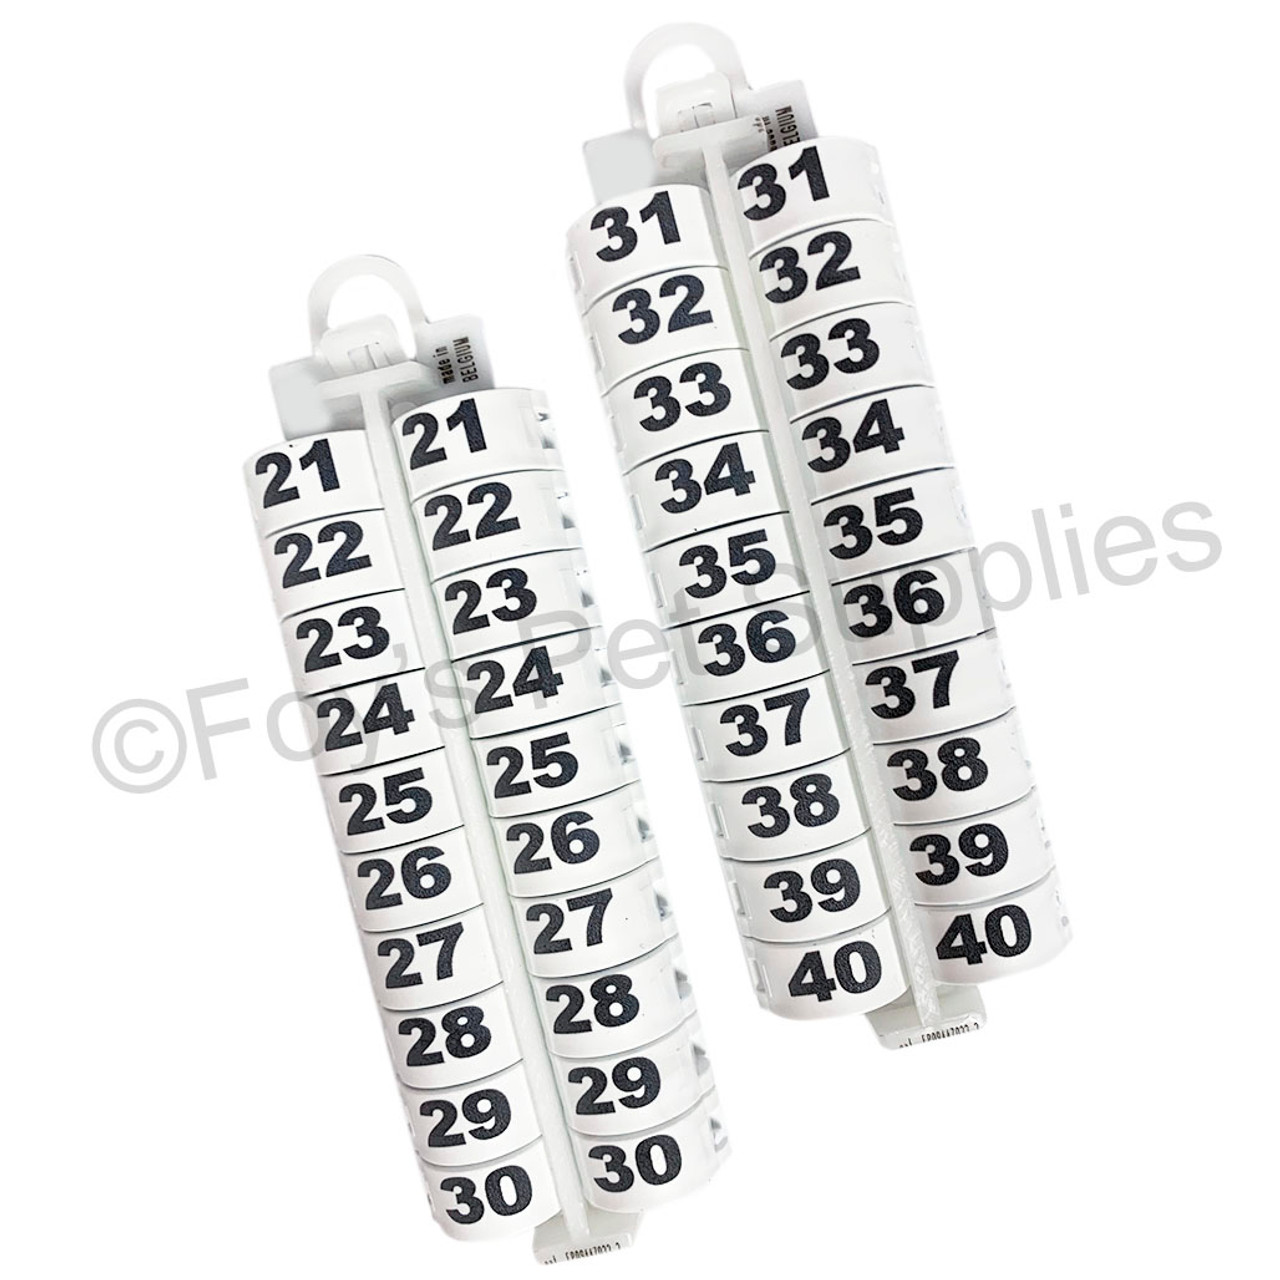 E-Z Lockringswith Numbers 21 - 40 (16 MM)